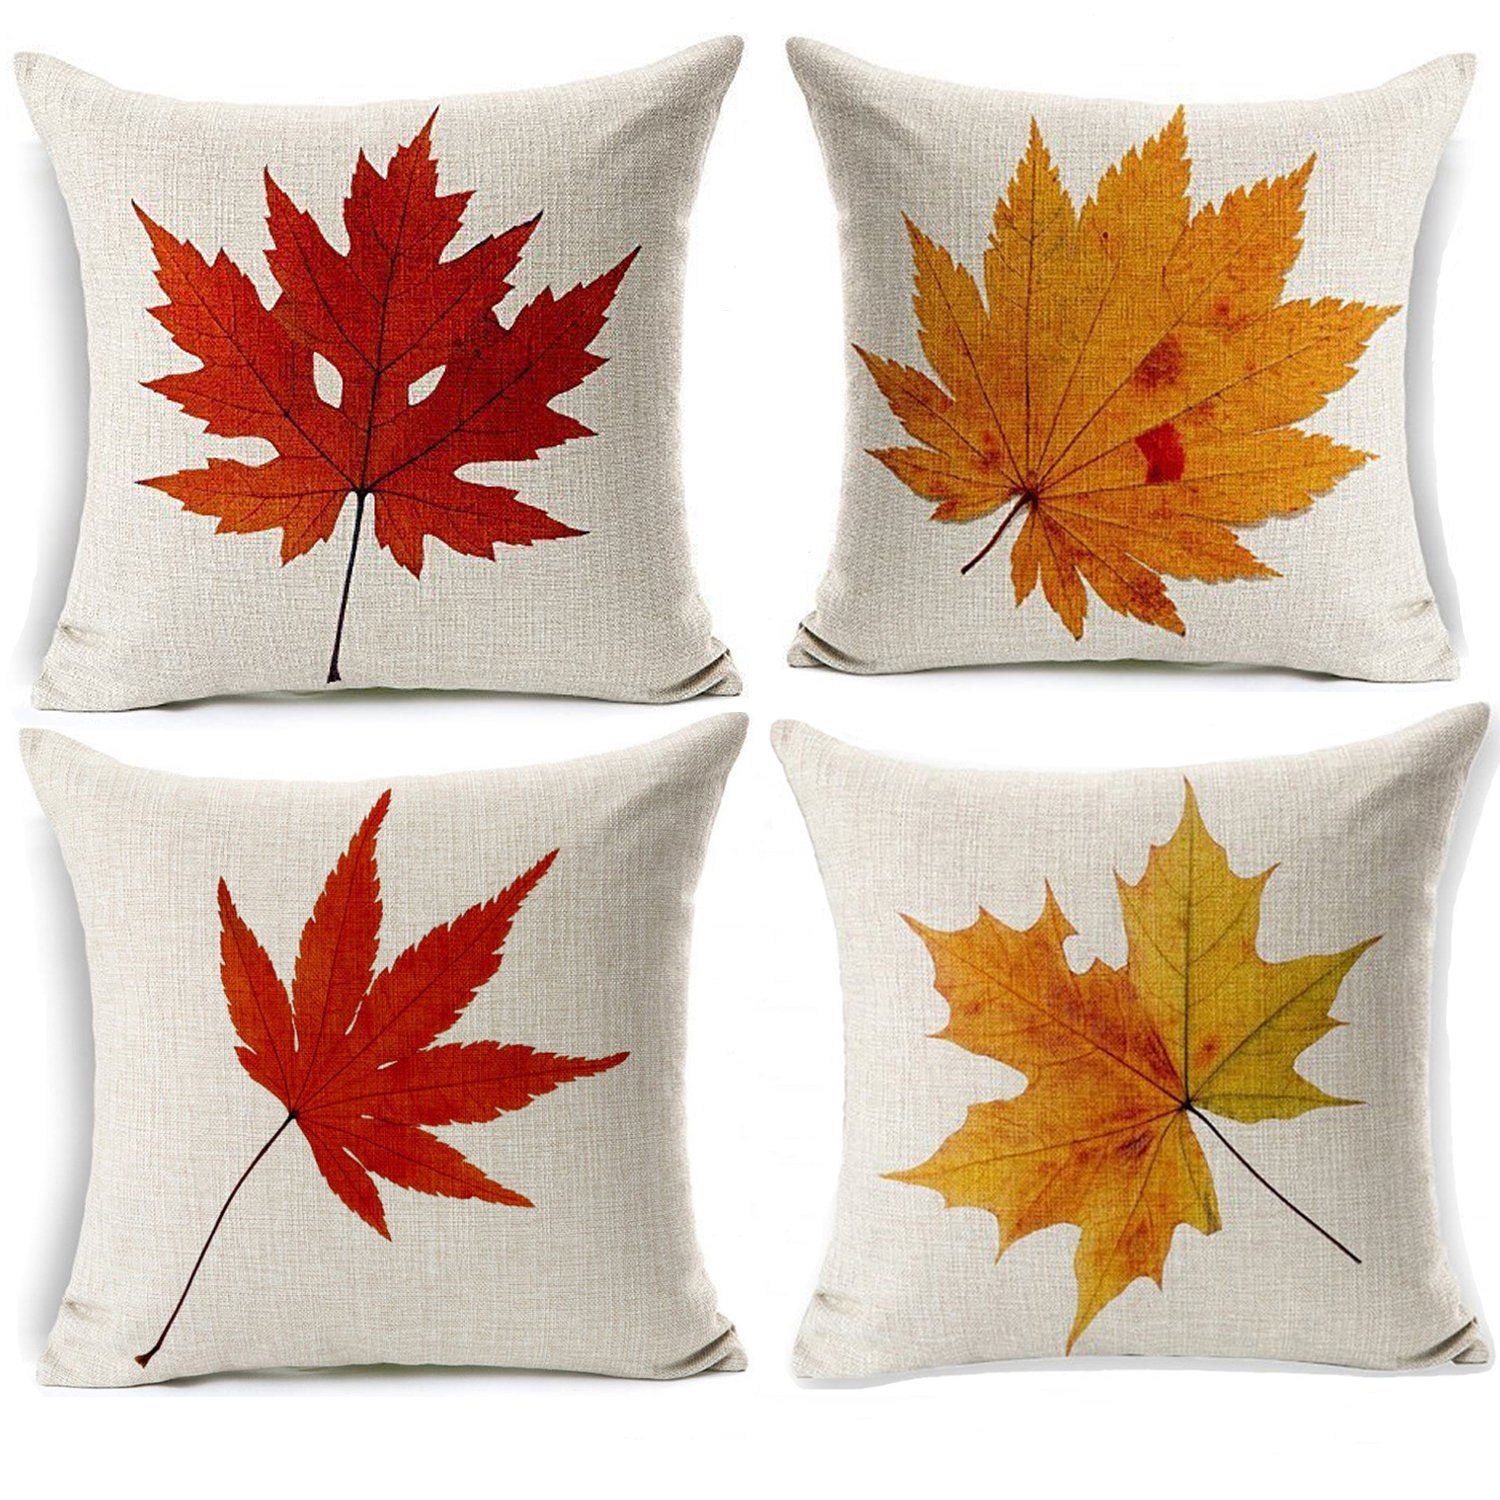 Maple Leaves Throw Pillow Covers - Wonder4 Decorative Fall Decor Colorful Maple Leaves Cushion Decor Autumn Leaf Pillow Cases